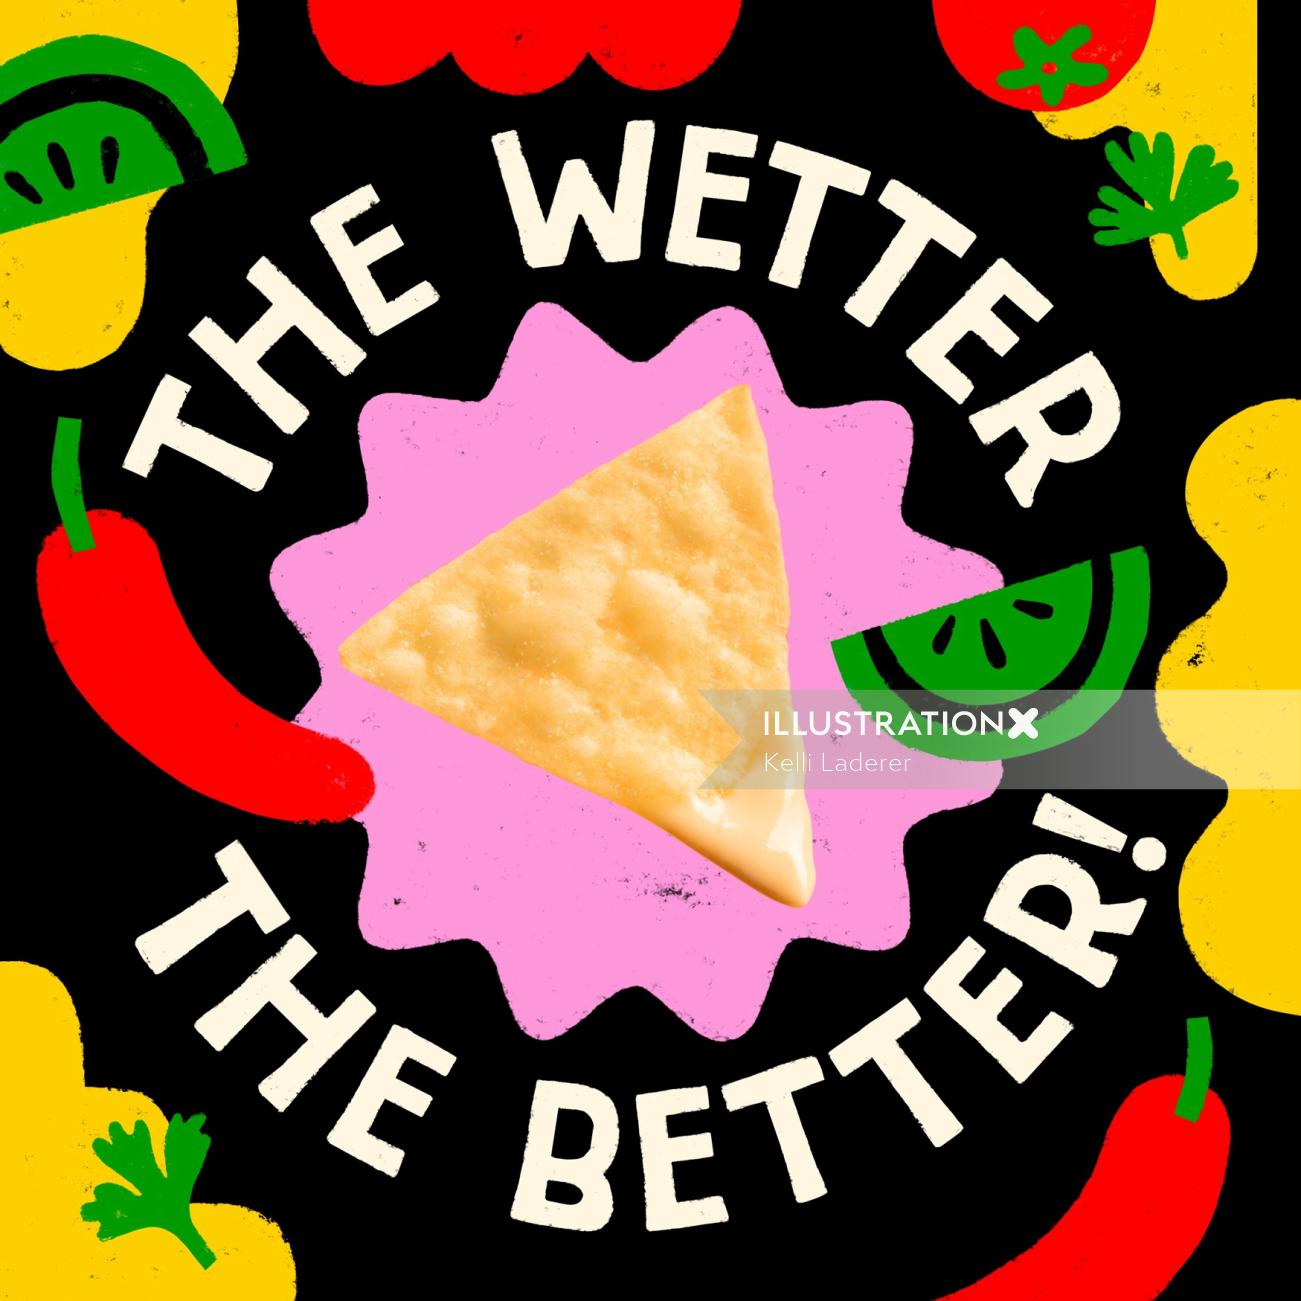 Lettering illustration of the wetter the better for product selling